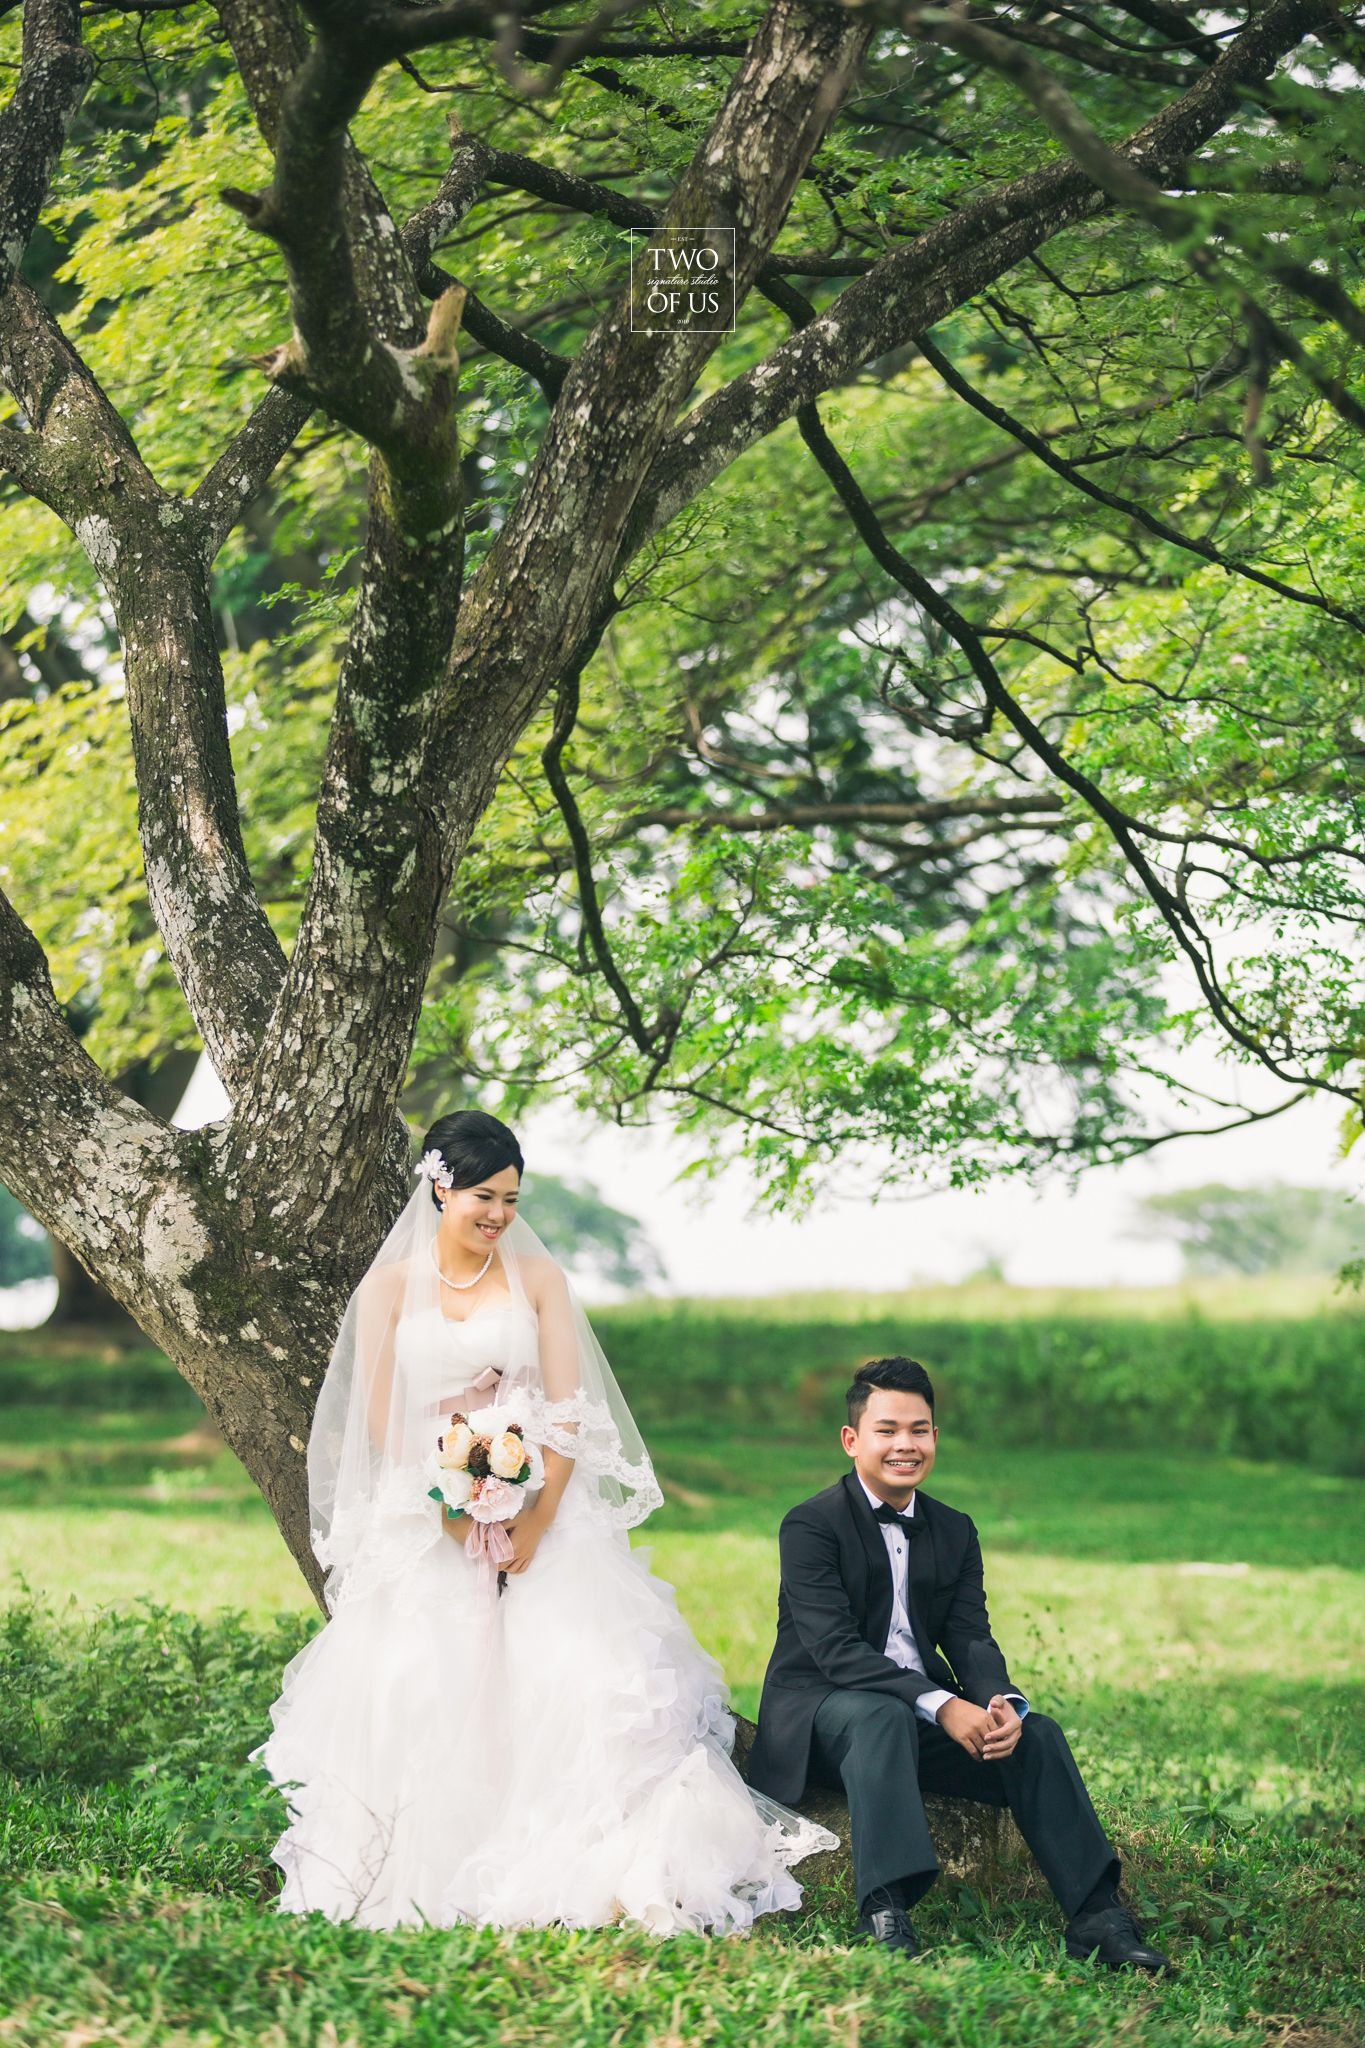 Pre Wedding Photography By Two Of Us Signature Studio Www Twoofus My